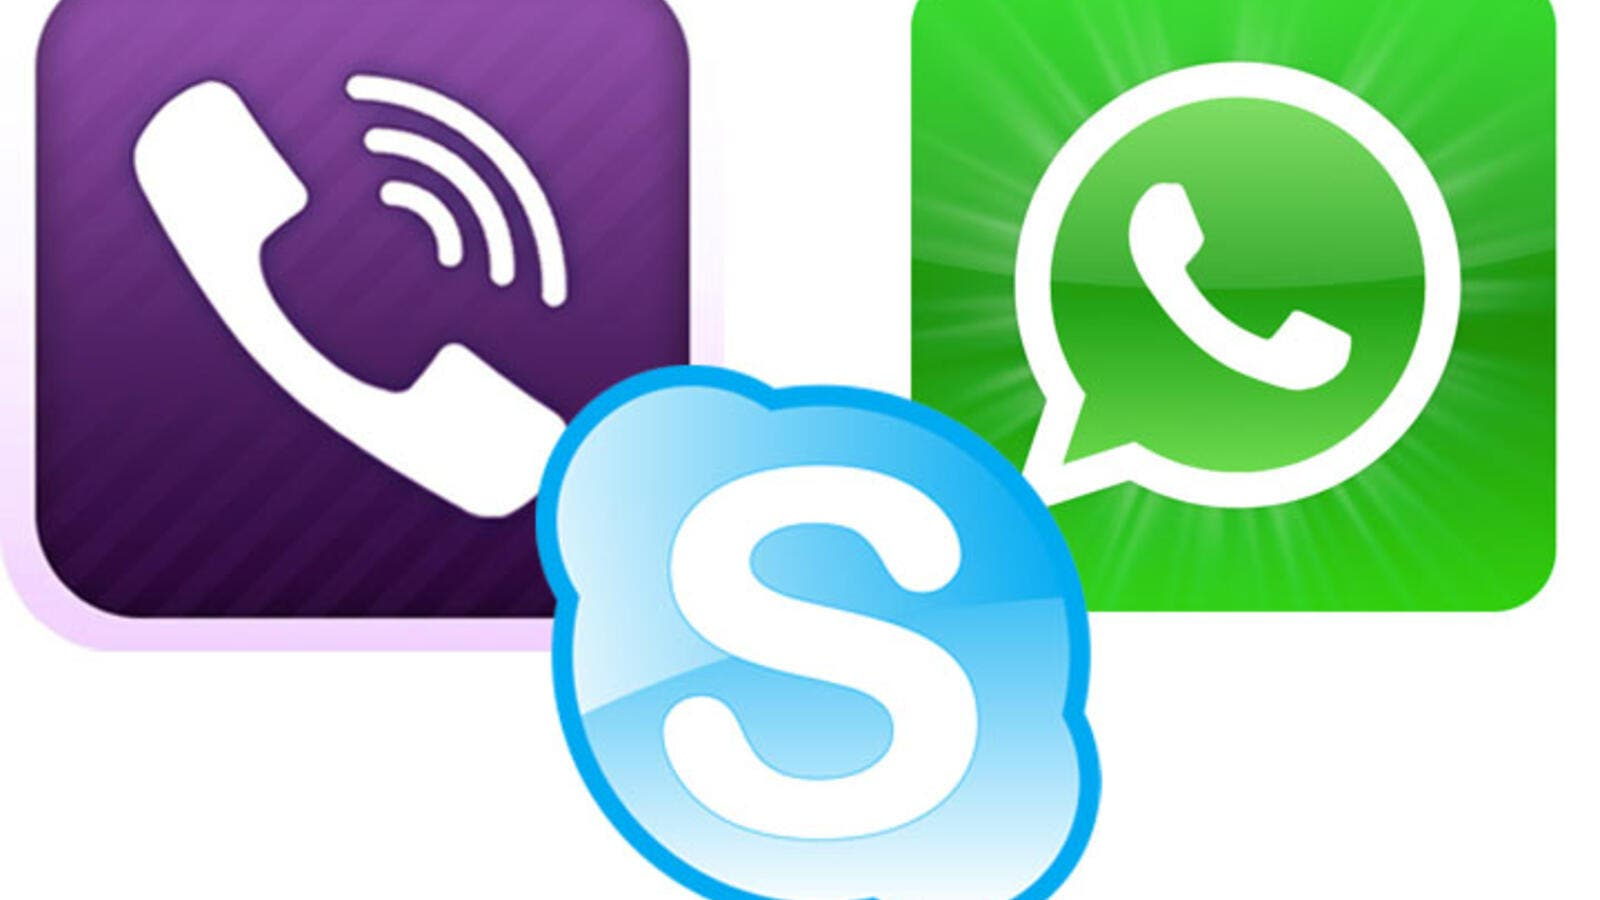 Saudi Arabia has not yet banned messaging apps, such as Skype, despite threats